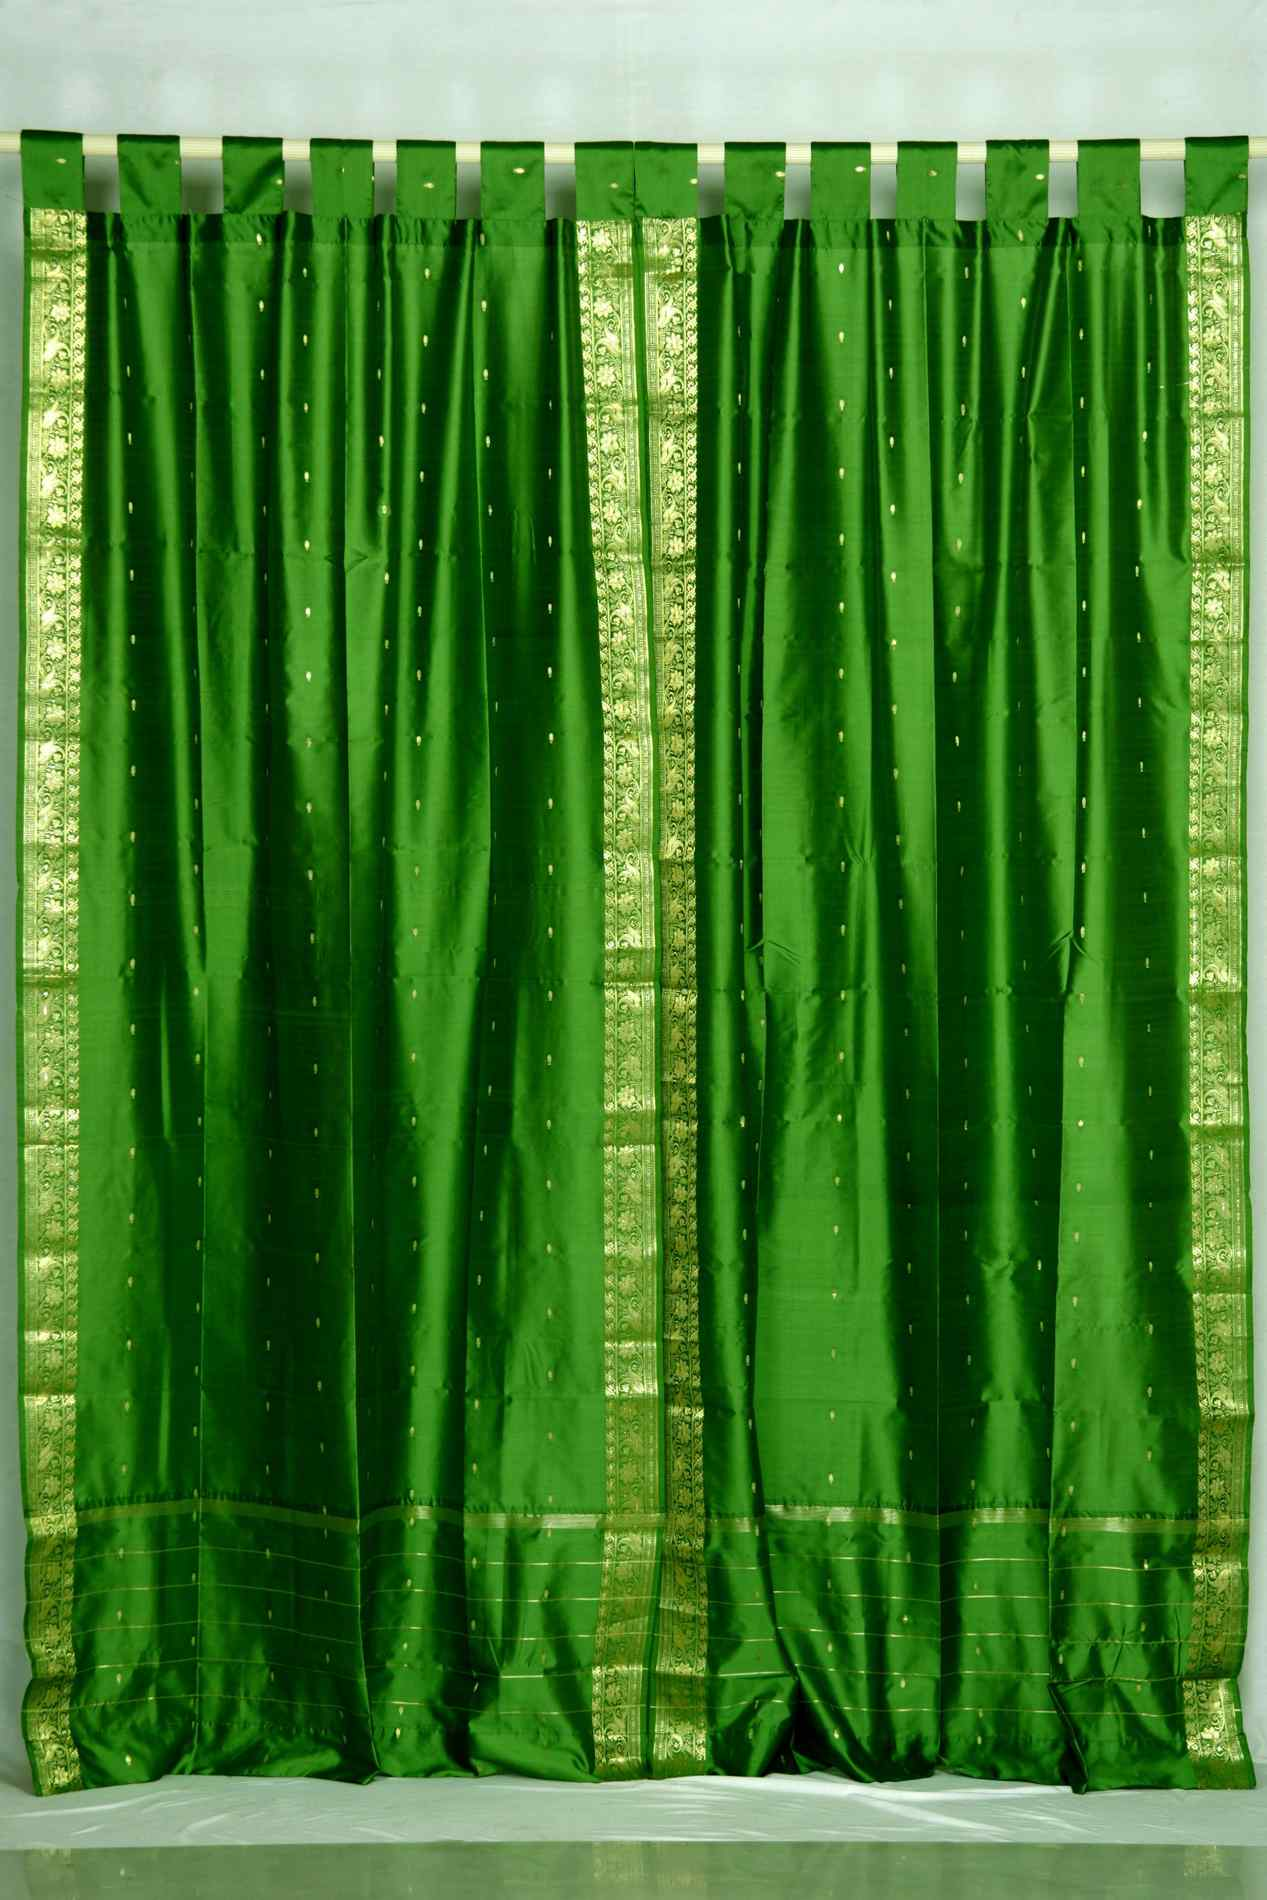 Indian Selections Forest Green  Tab Top  Sheer Sari Curtain / Drape / Panel  - Pair at Sears.com